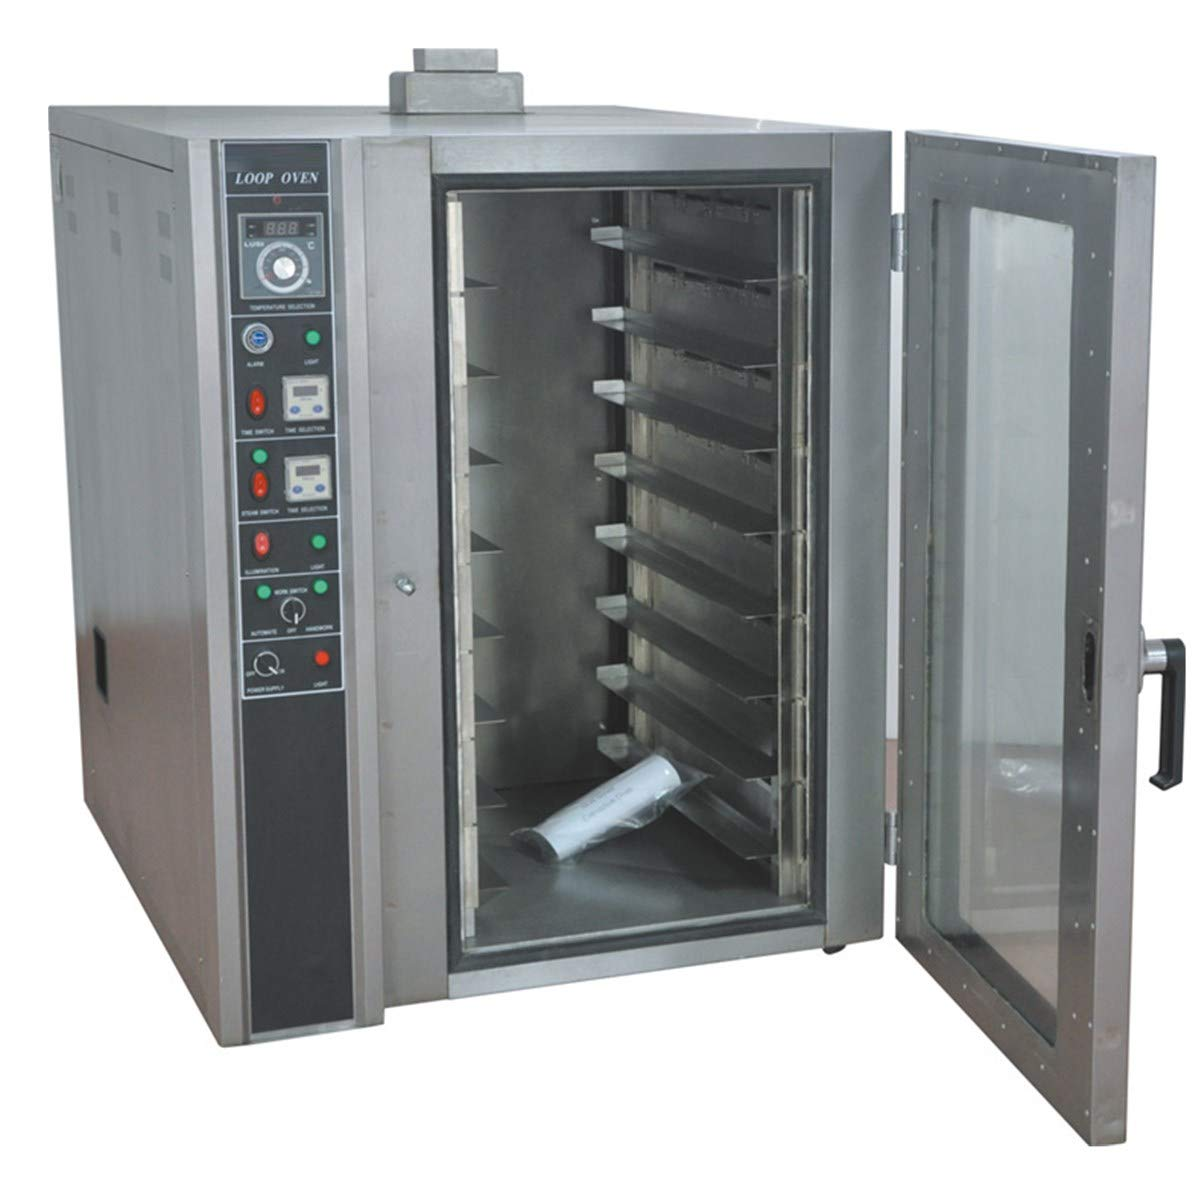 Bread baking oven,8 trays convection oven,over the range microwave oven